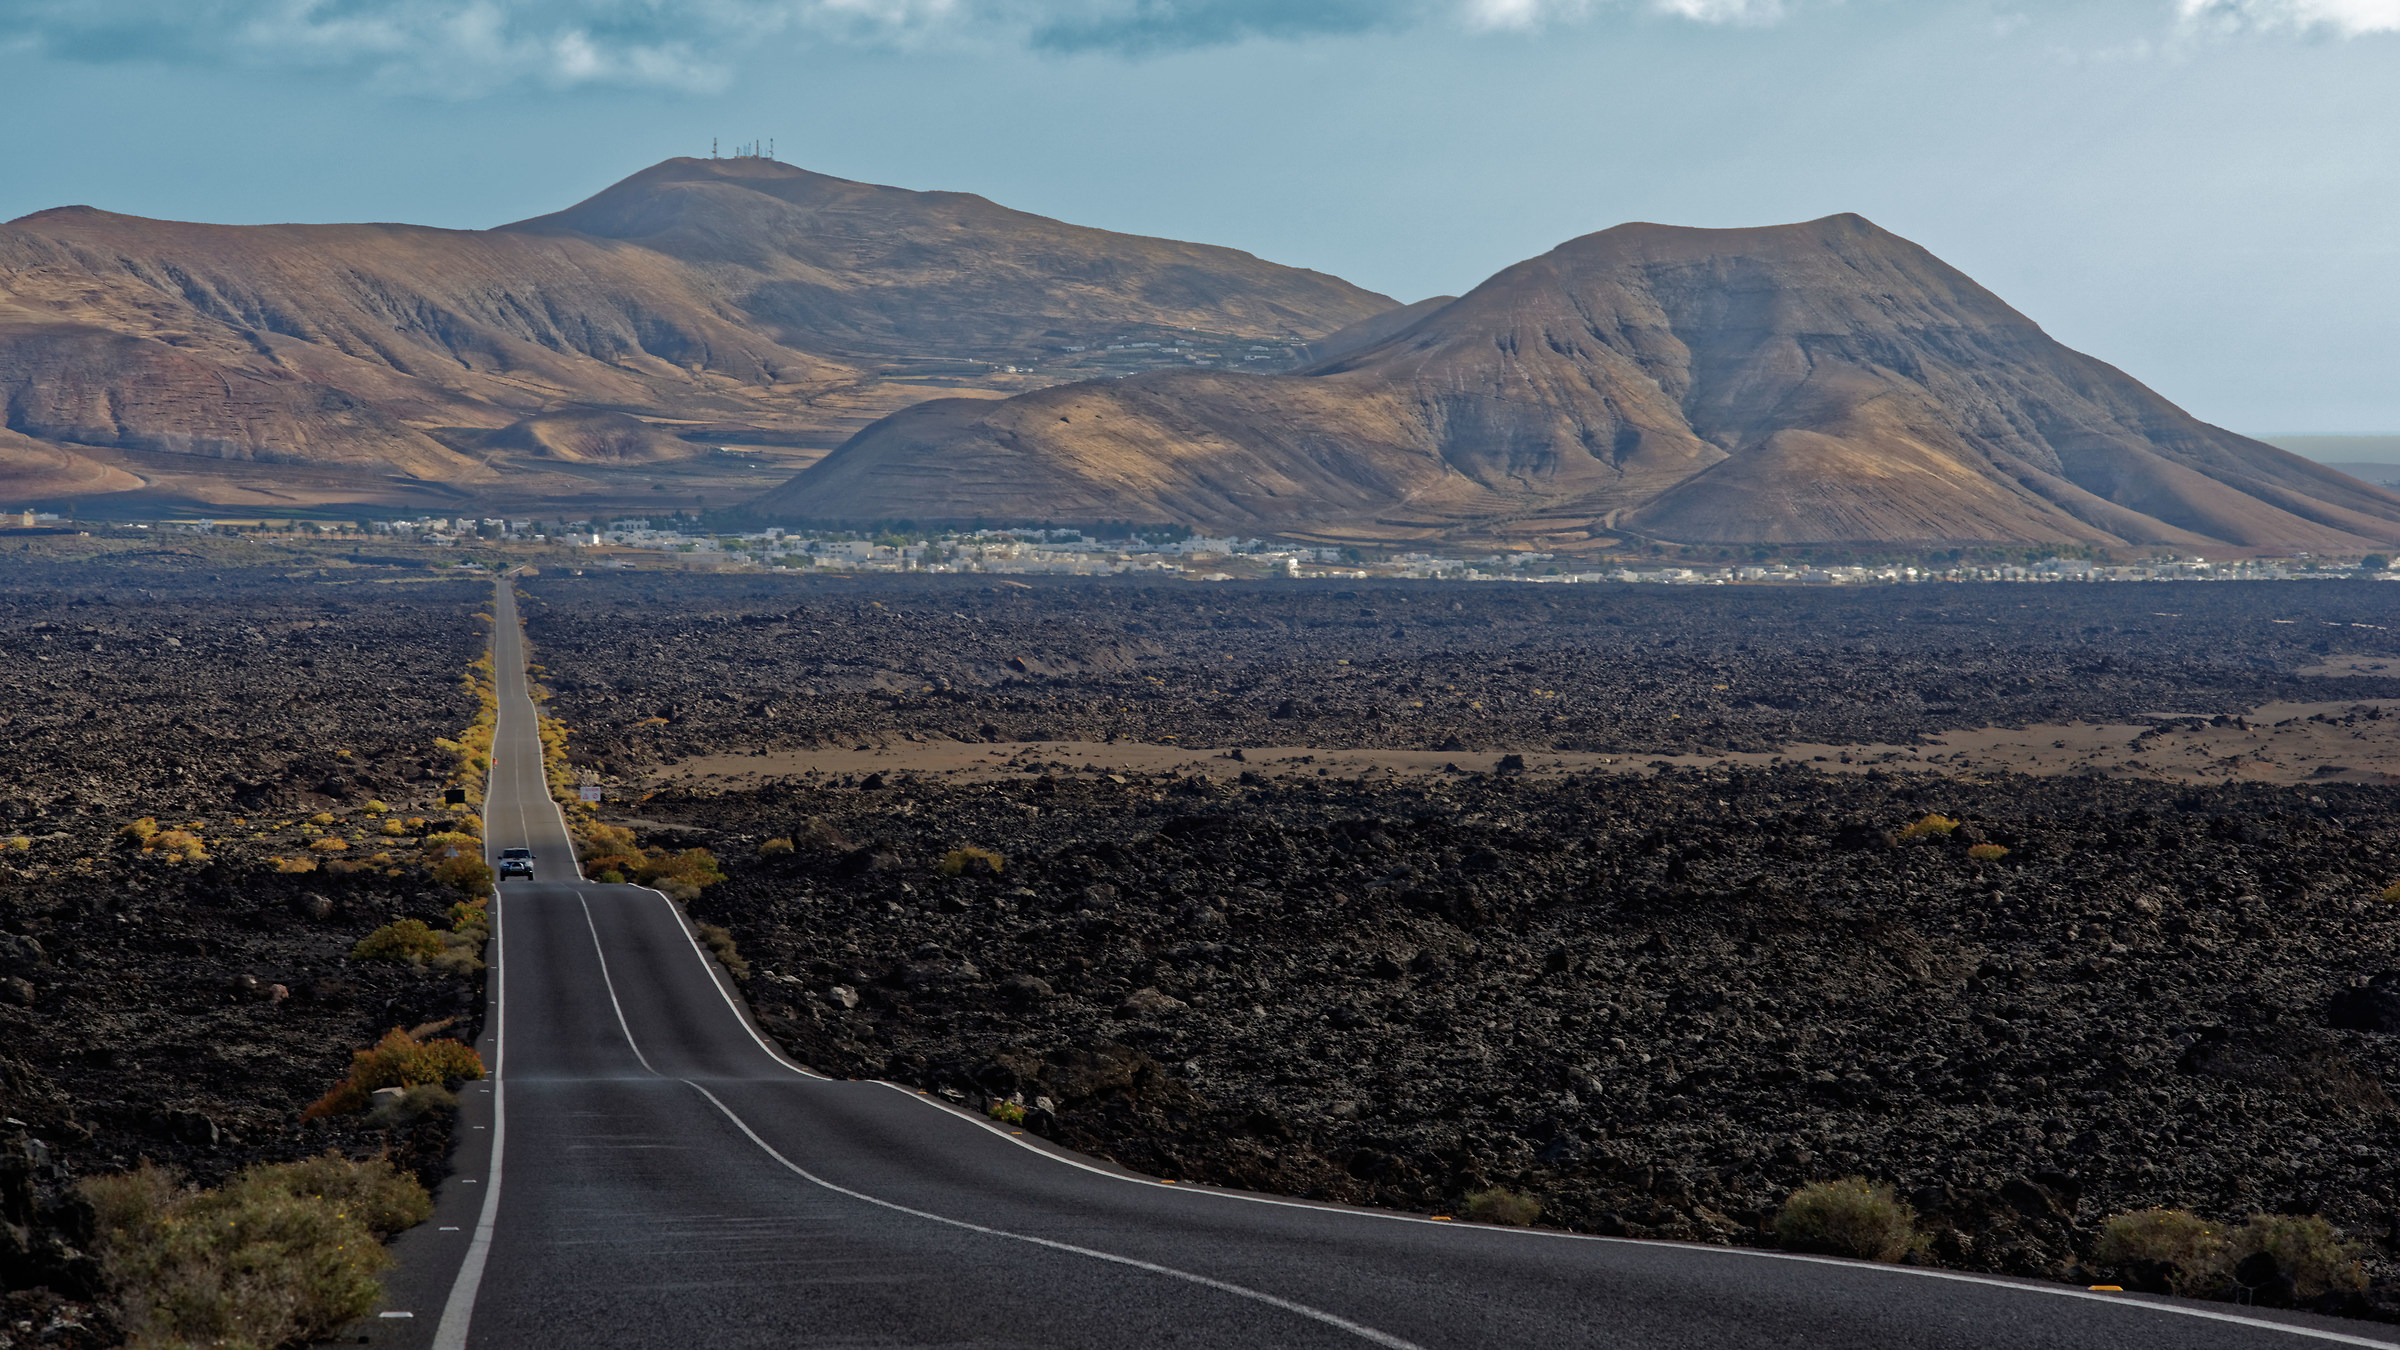 On the road to Timanfaya, Lazarote...